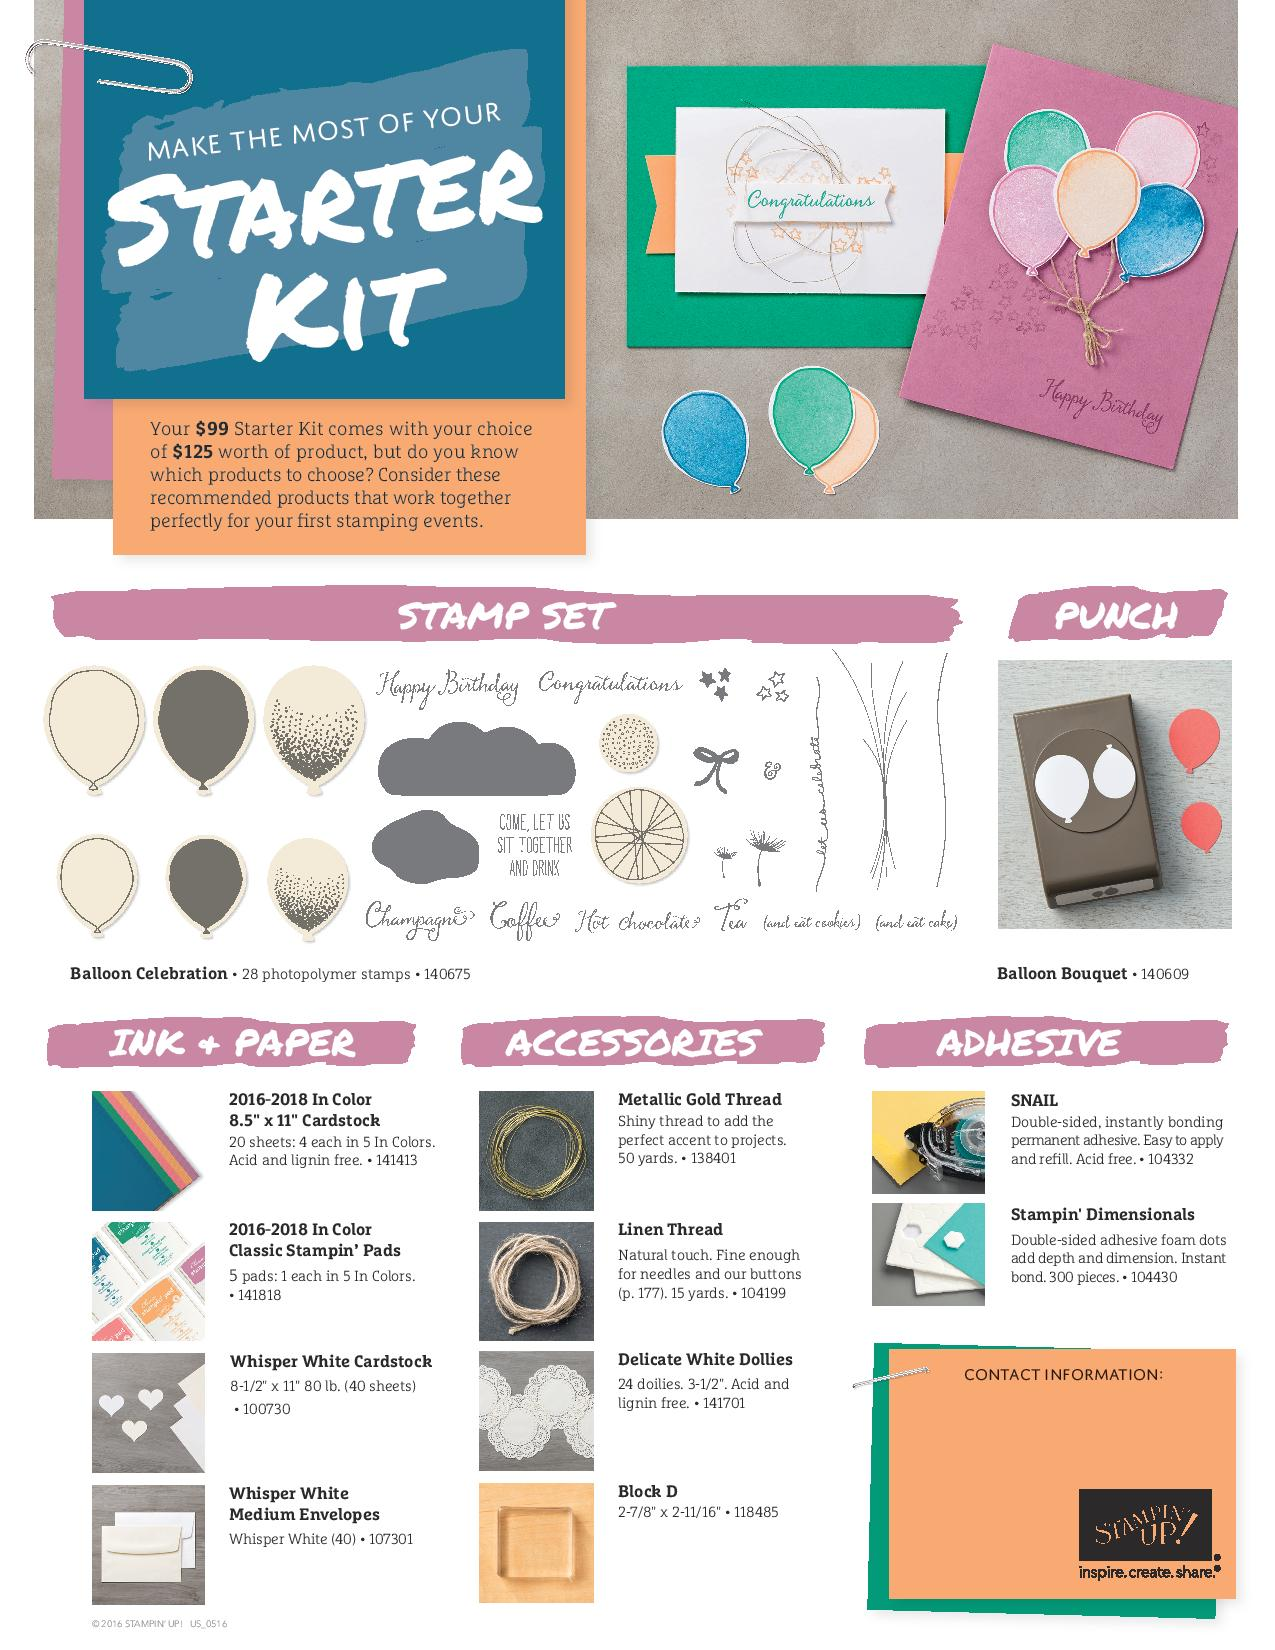 Stampin' Up! Starter kit suggestions